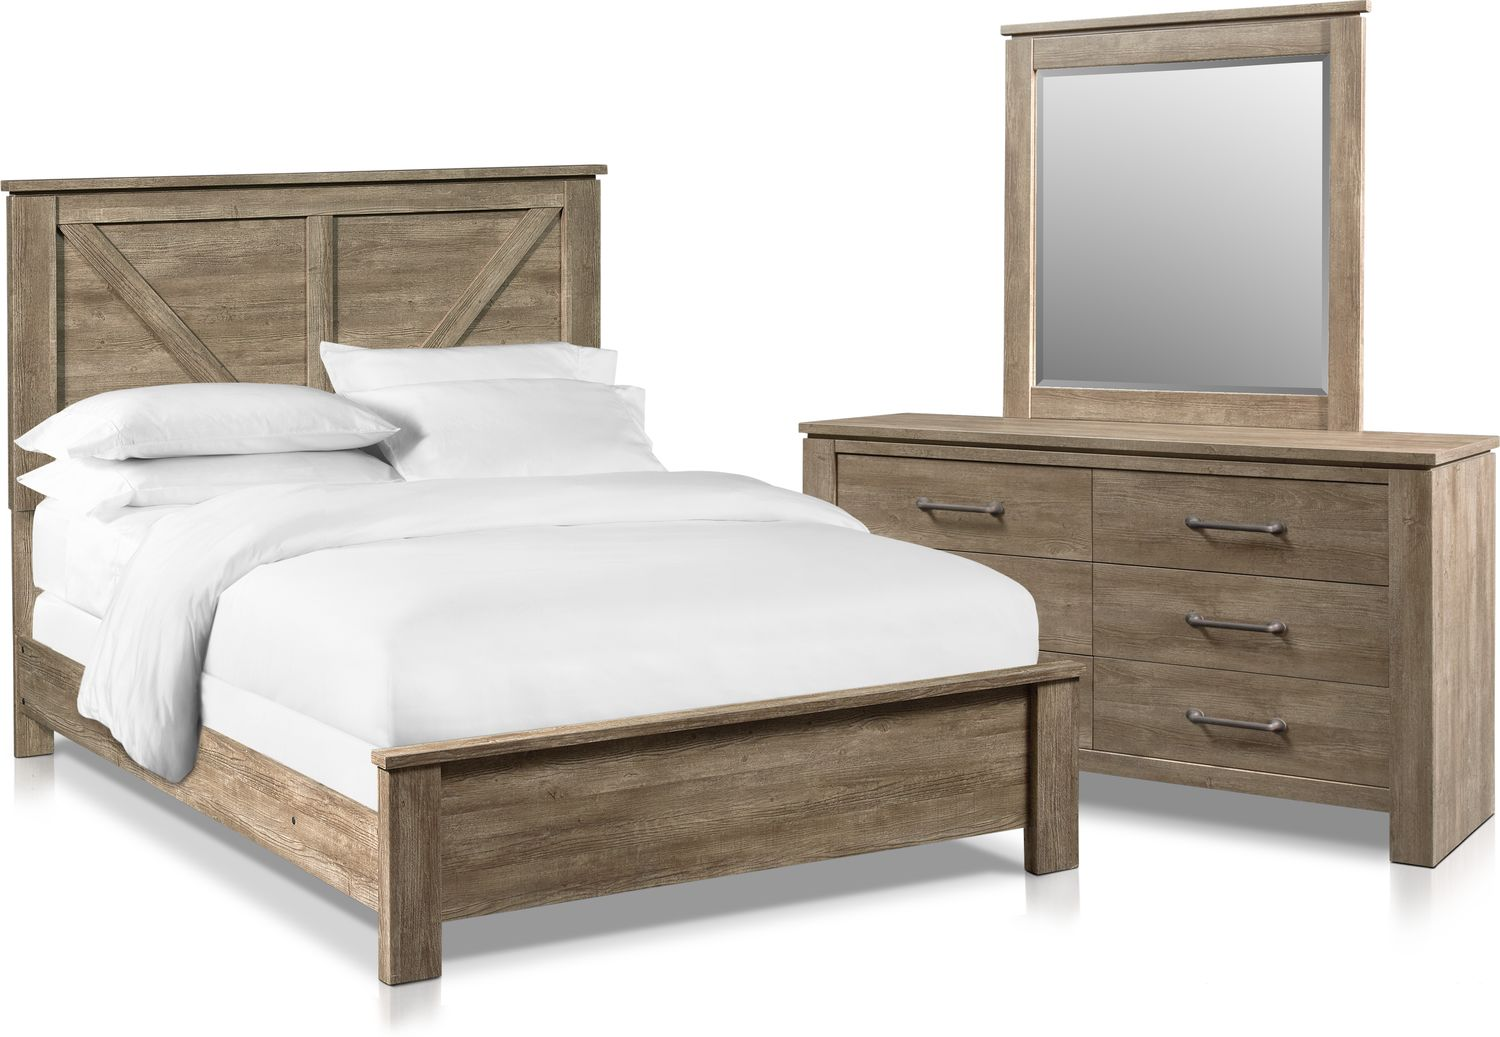 Bedroom Furniture - Perry 5-Piece Bedroom Set with Dresser and Mirror